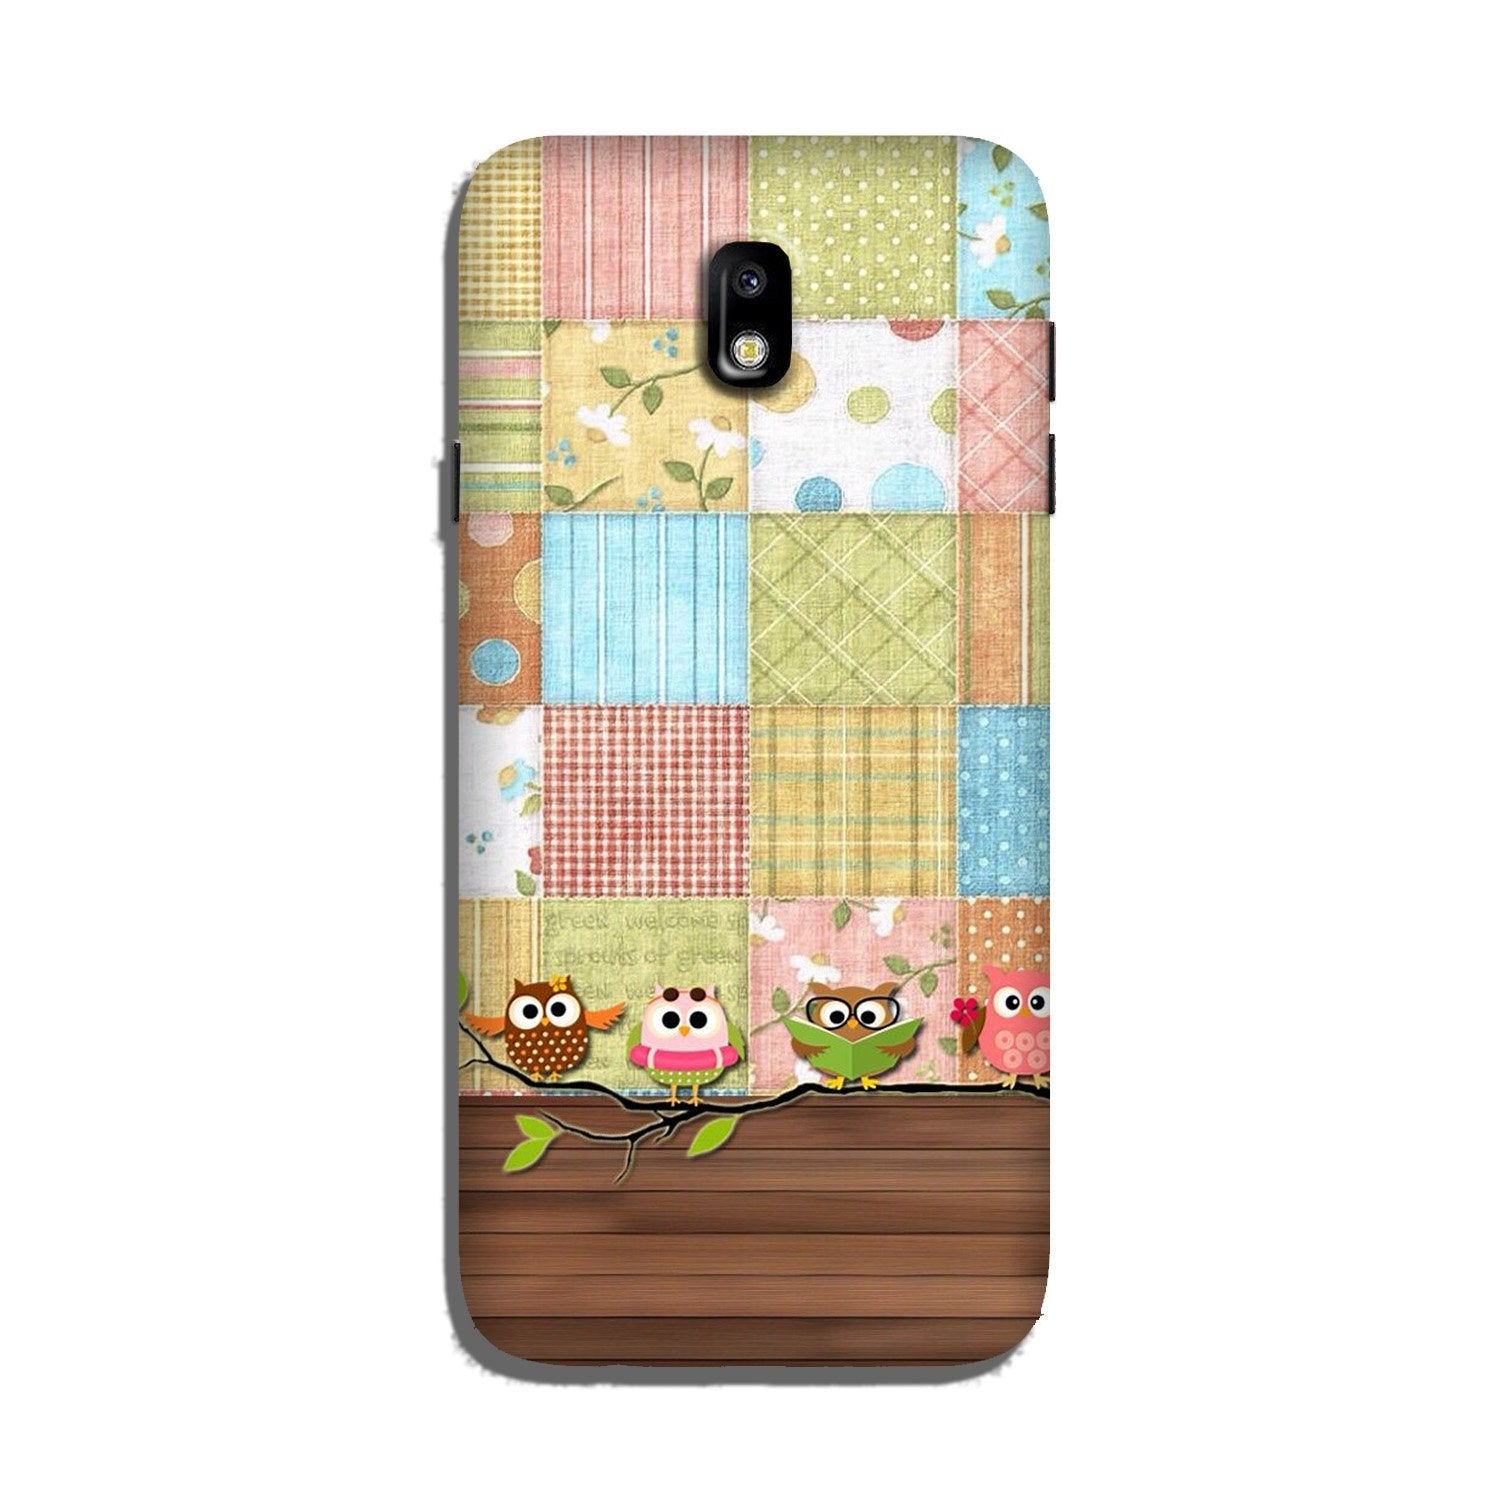 Owls Case for Galaxy J5 Pro (Design - 202)